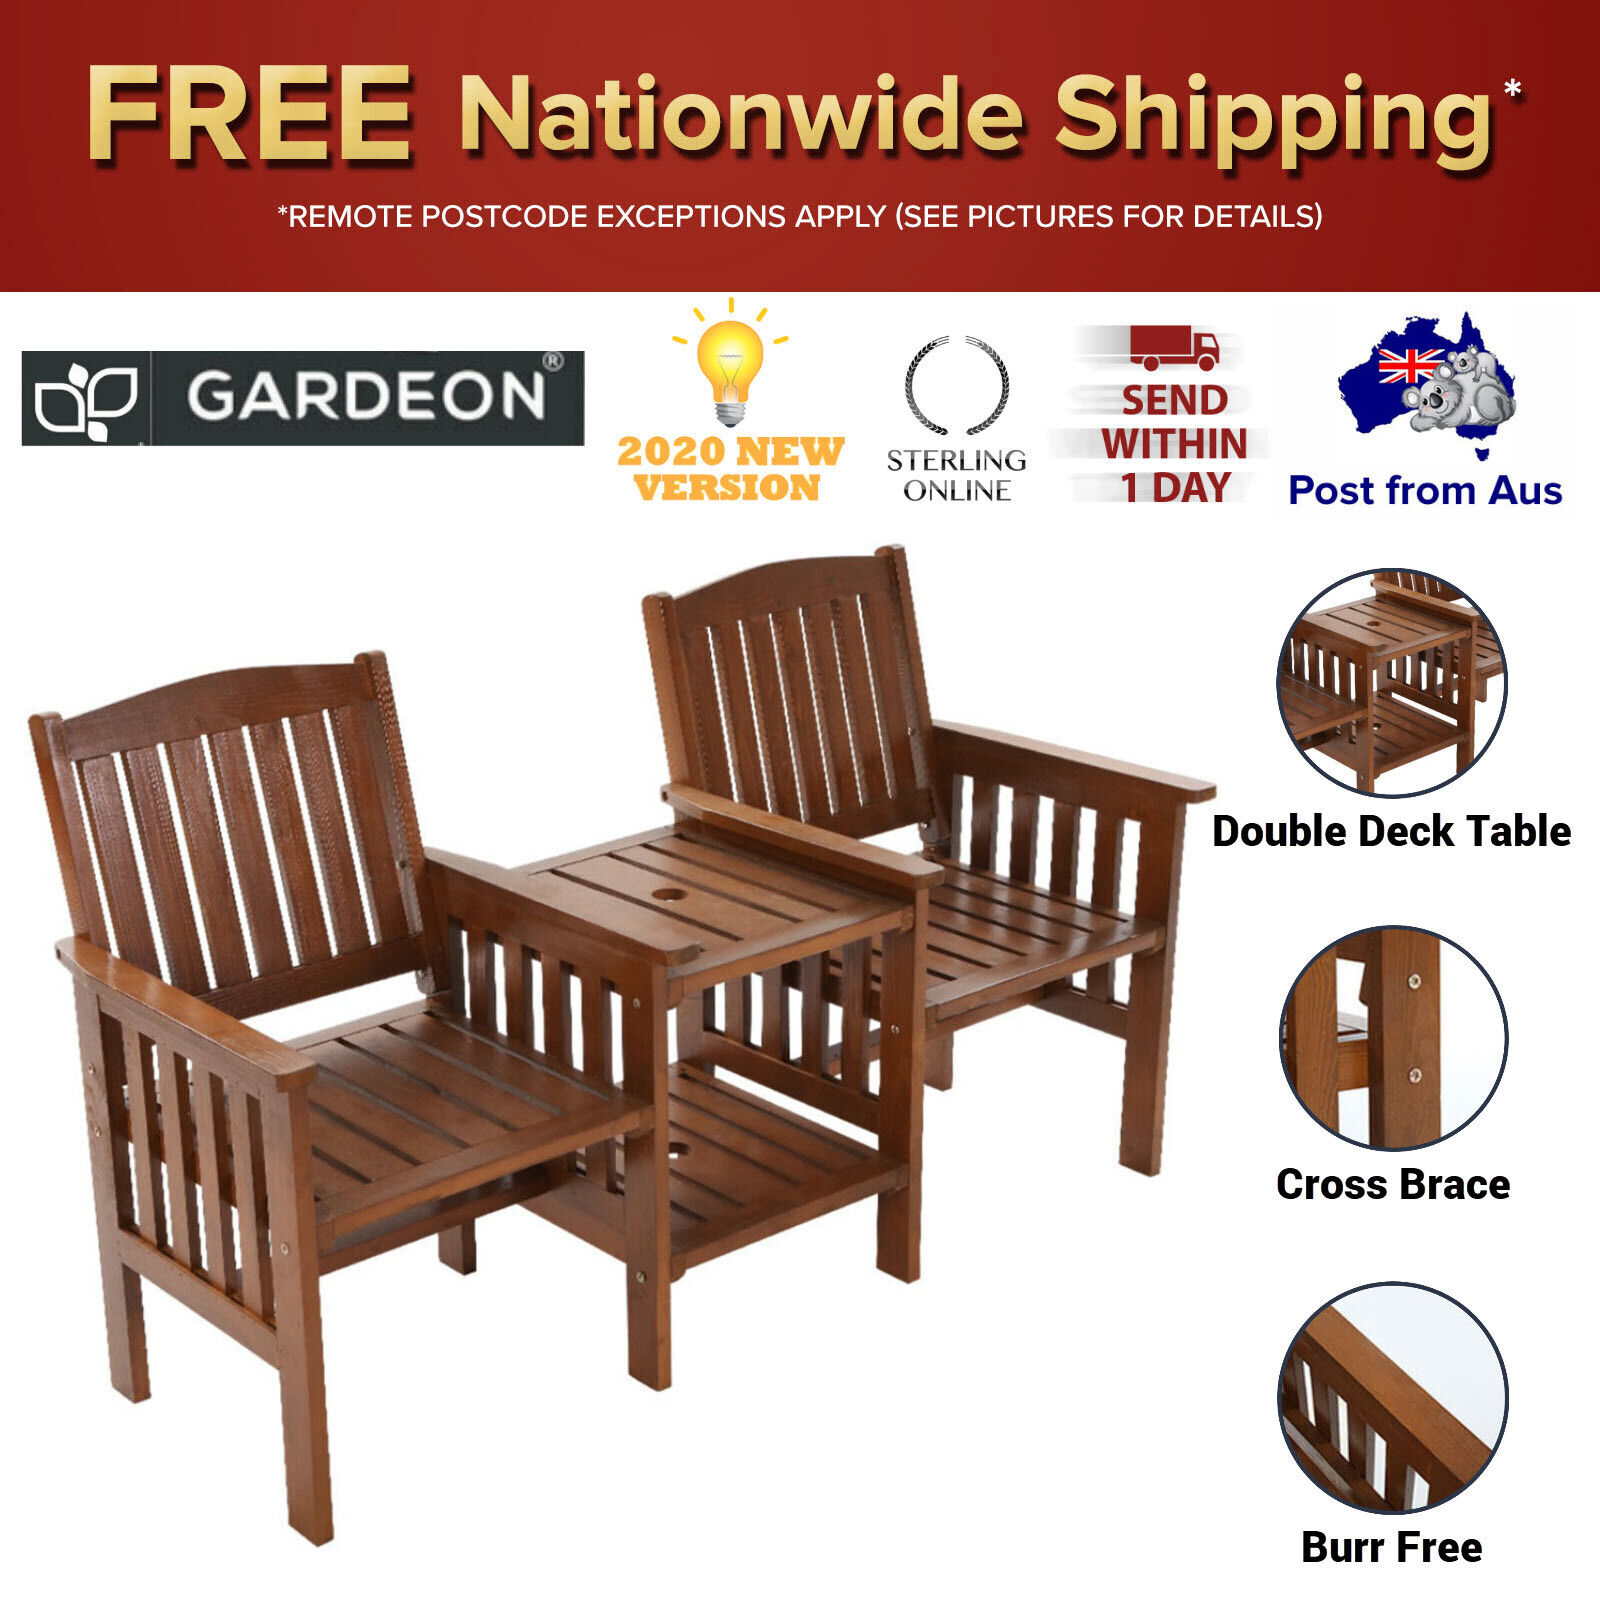 Garden Furniture - Outdoor Two Seater Jack & Jill Garden Chair Table Wooden Couch Furniture Yard